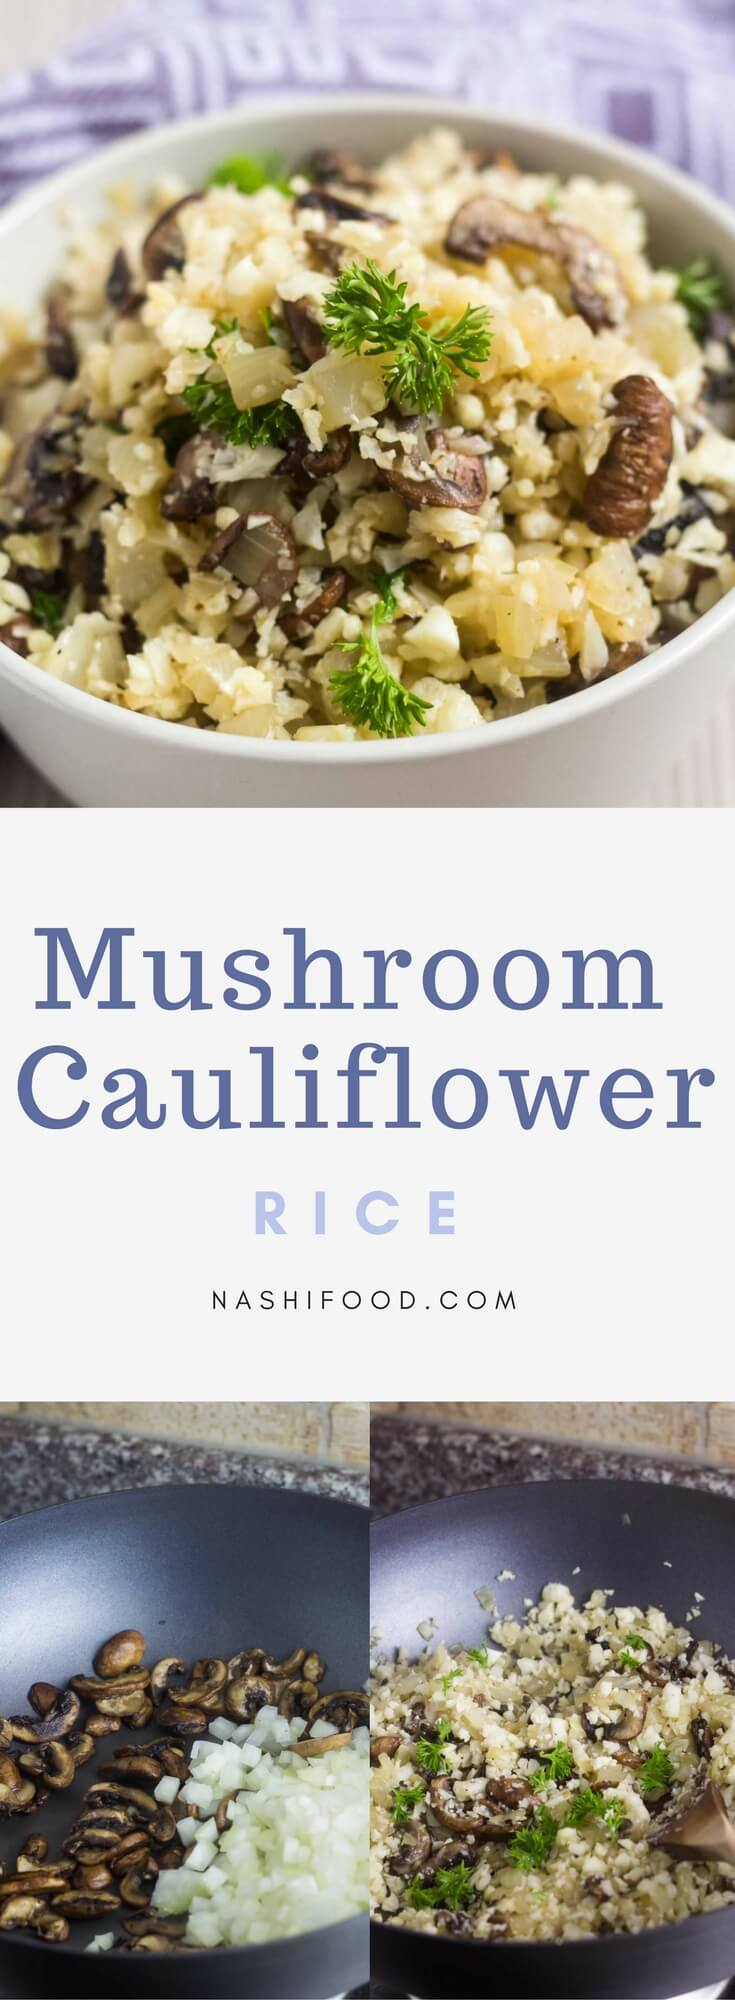 Mushroom Cauliflower Rice is a low carb alternative, and a great side dish ready in 15 minutes | nashifood.com